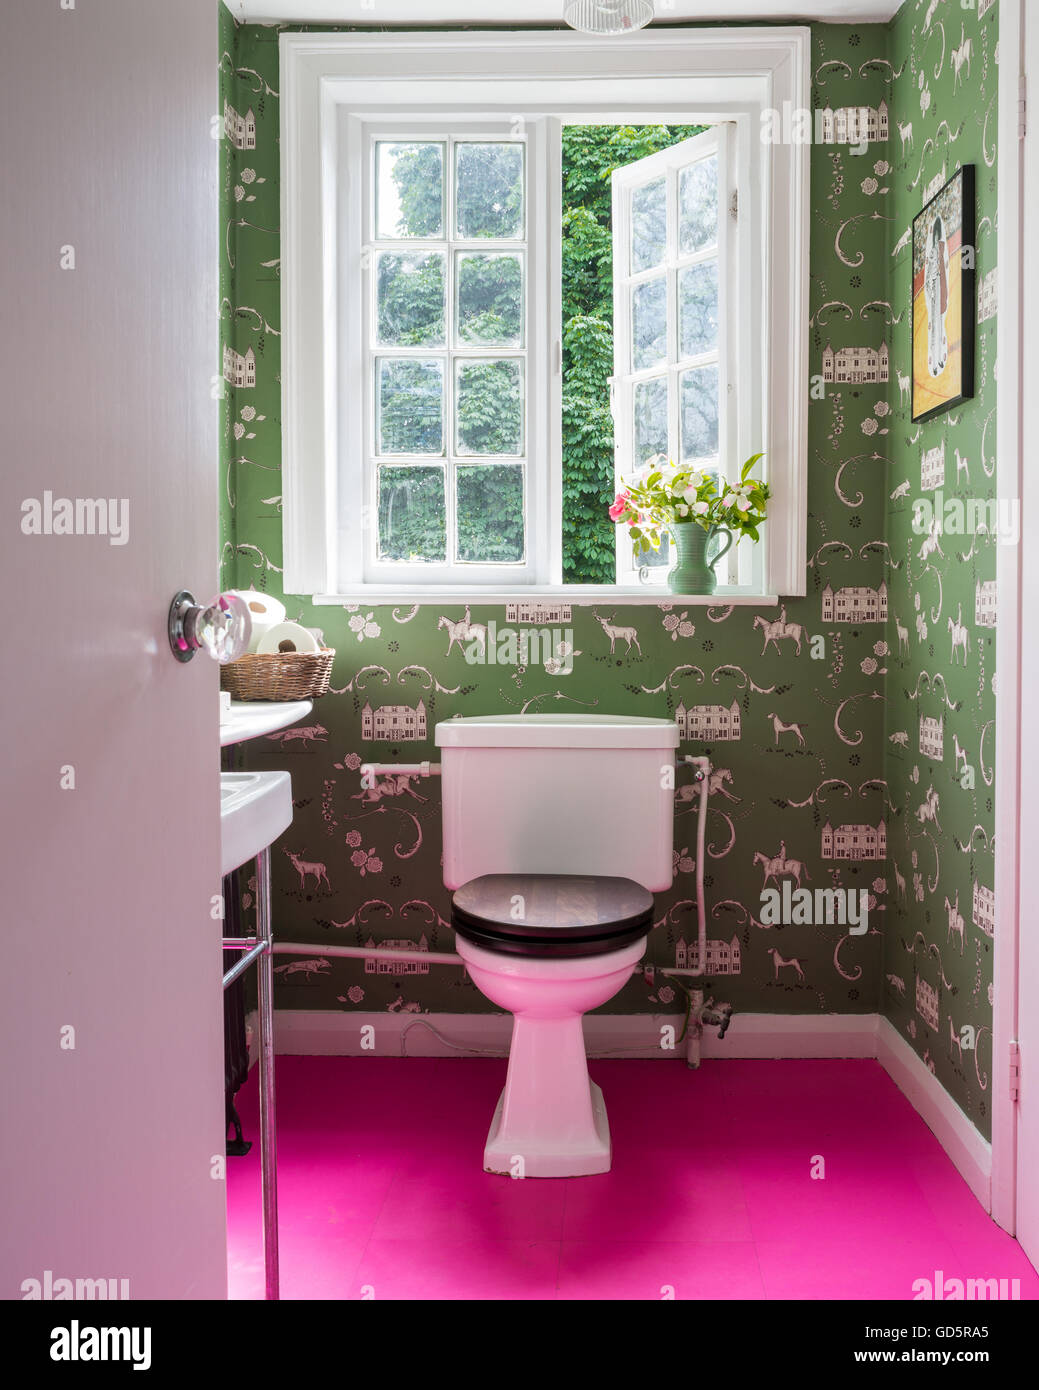 Vibrant pink tiled floor in cloakroom with green toilet wallpaper - Stock Image